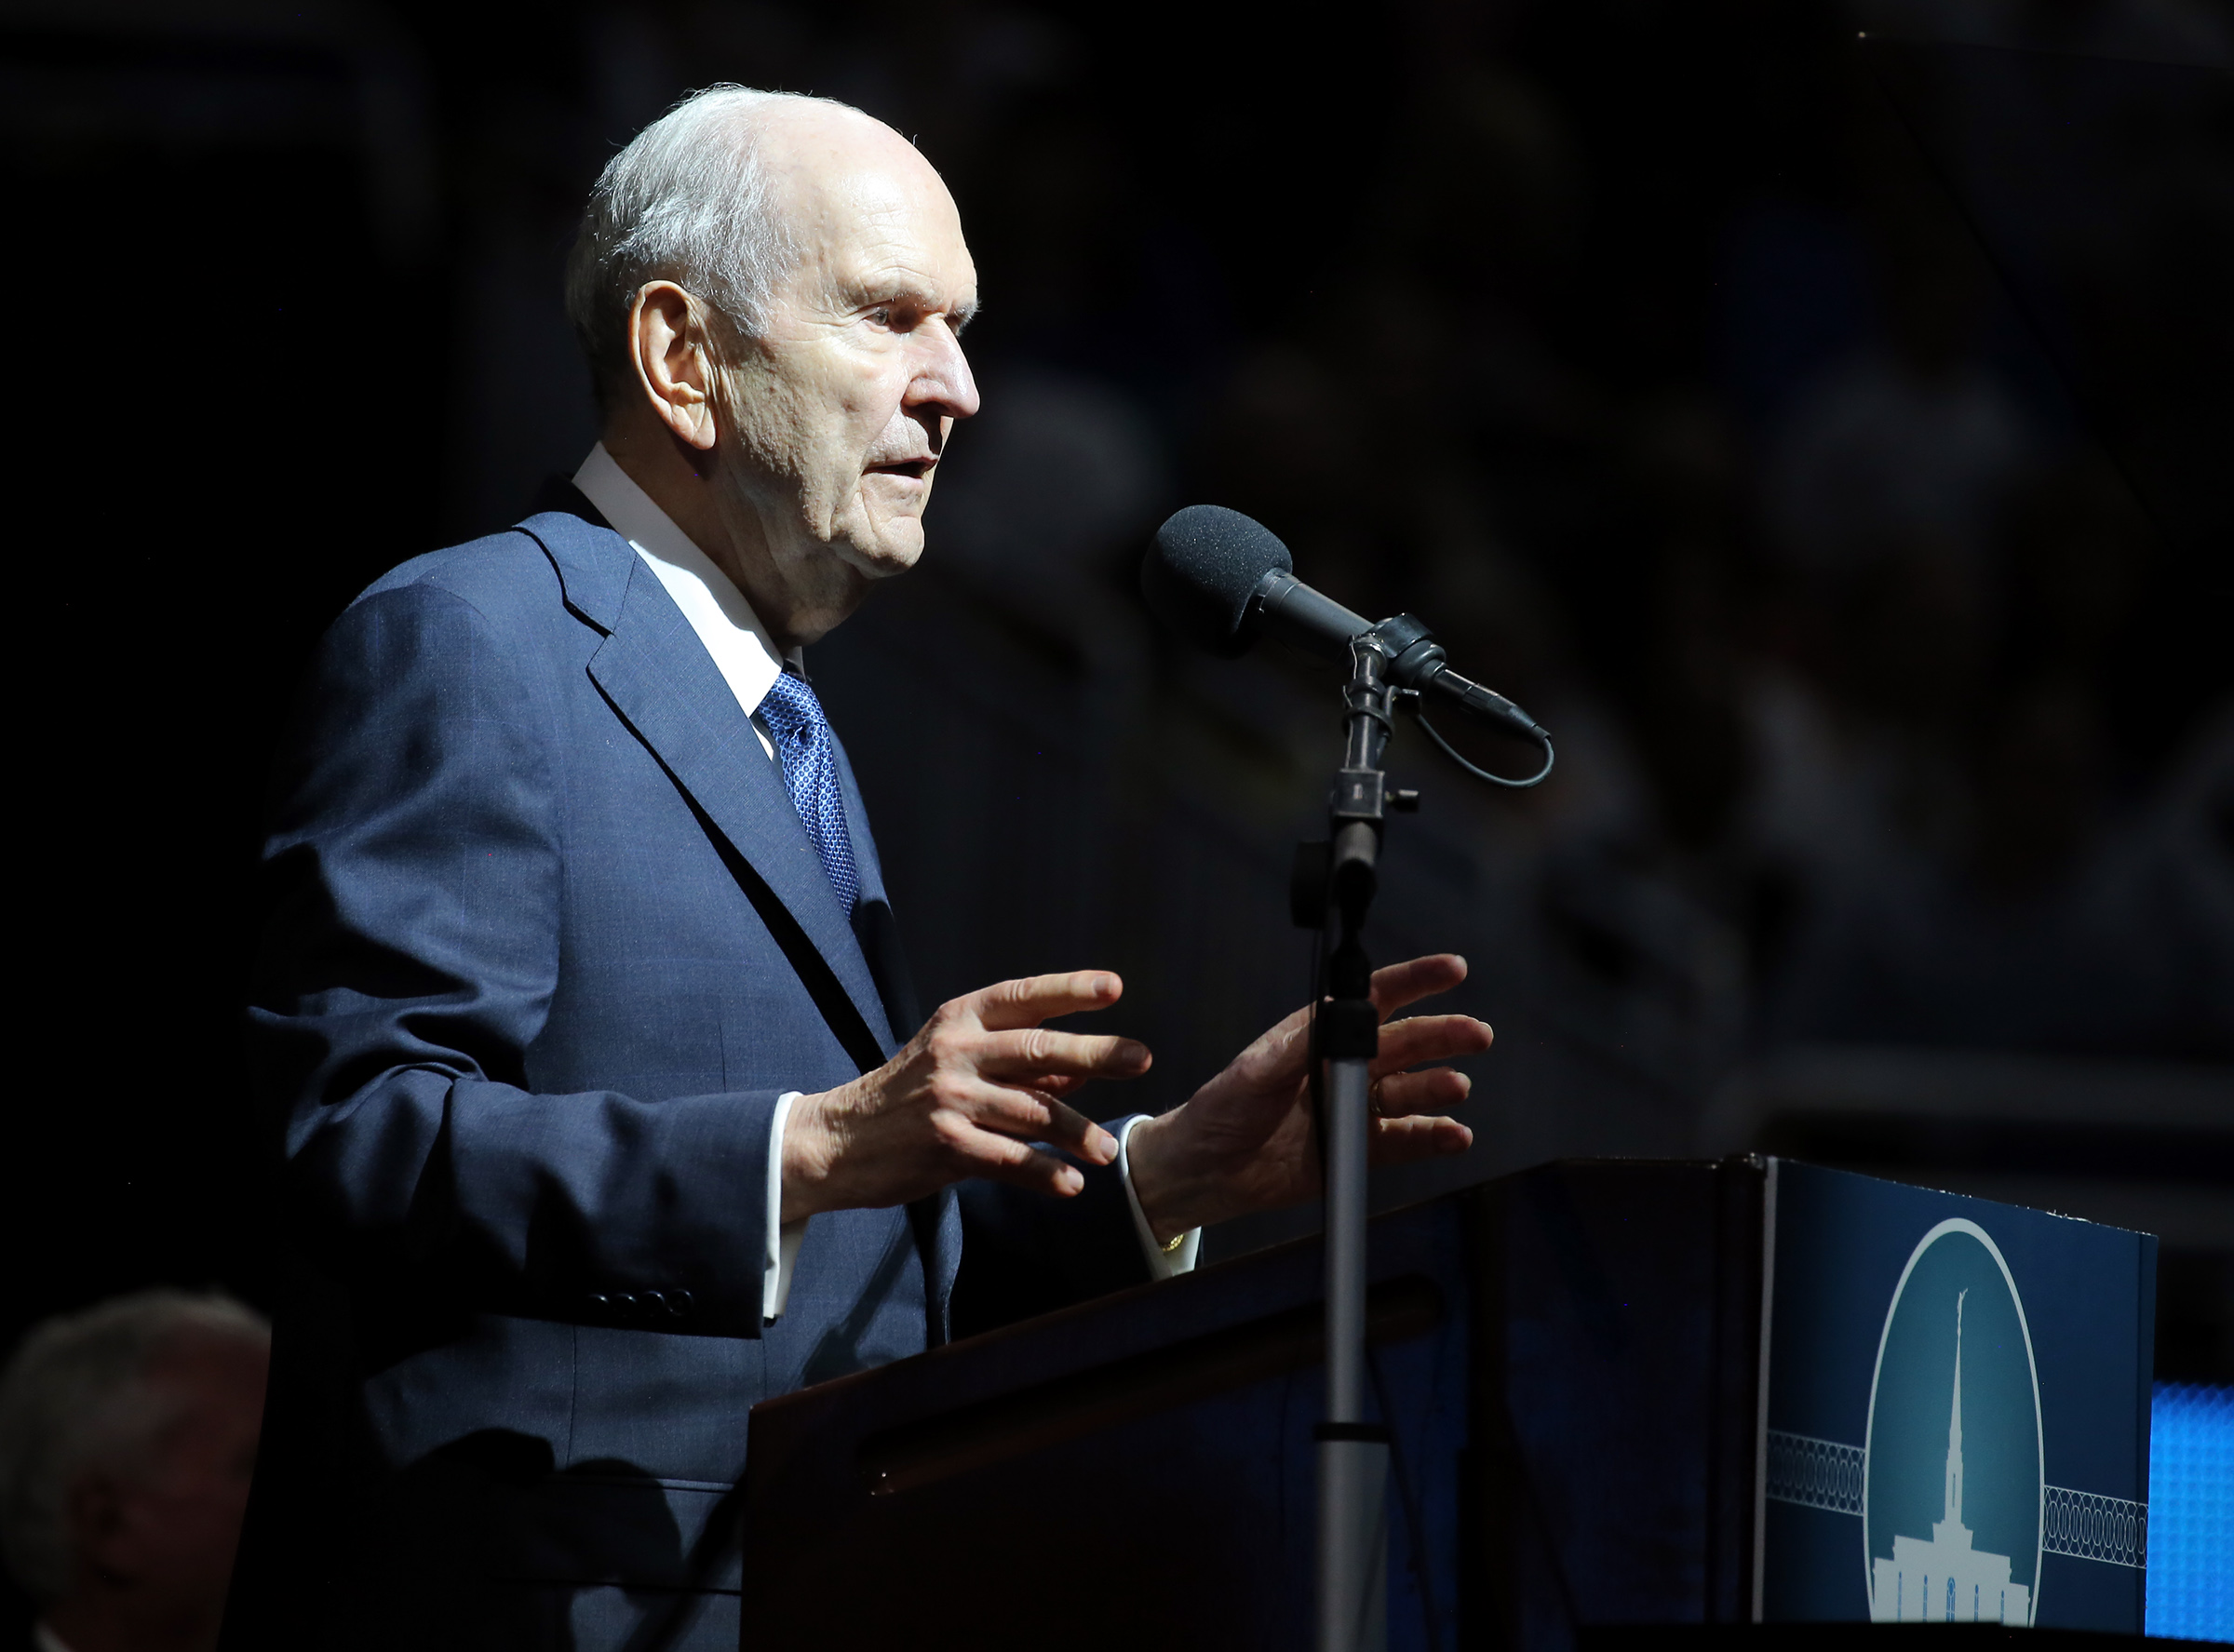 President Russell M. Nelson speaks at the devotional in the Amway Center in Orlando, Florida, on Sunday, June 9, 2019.